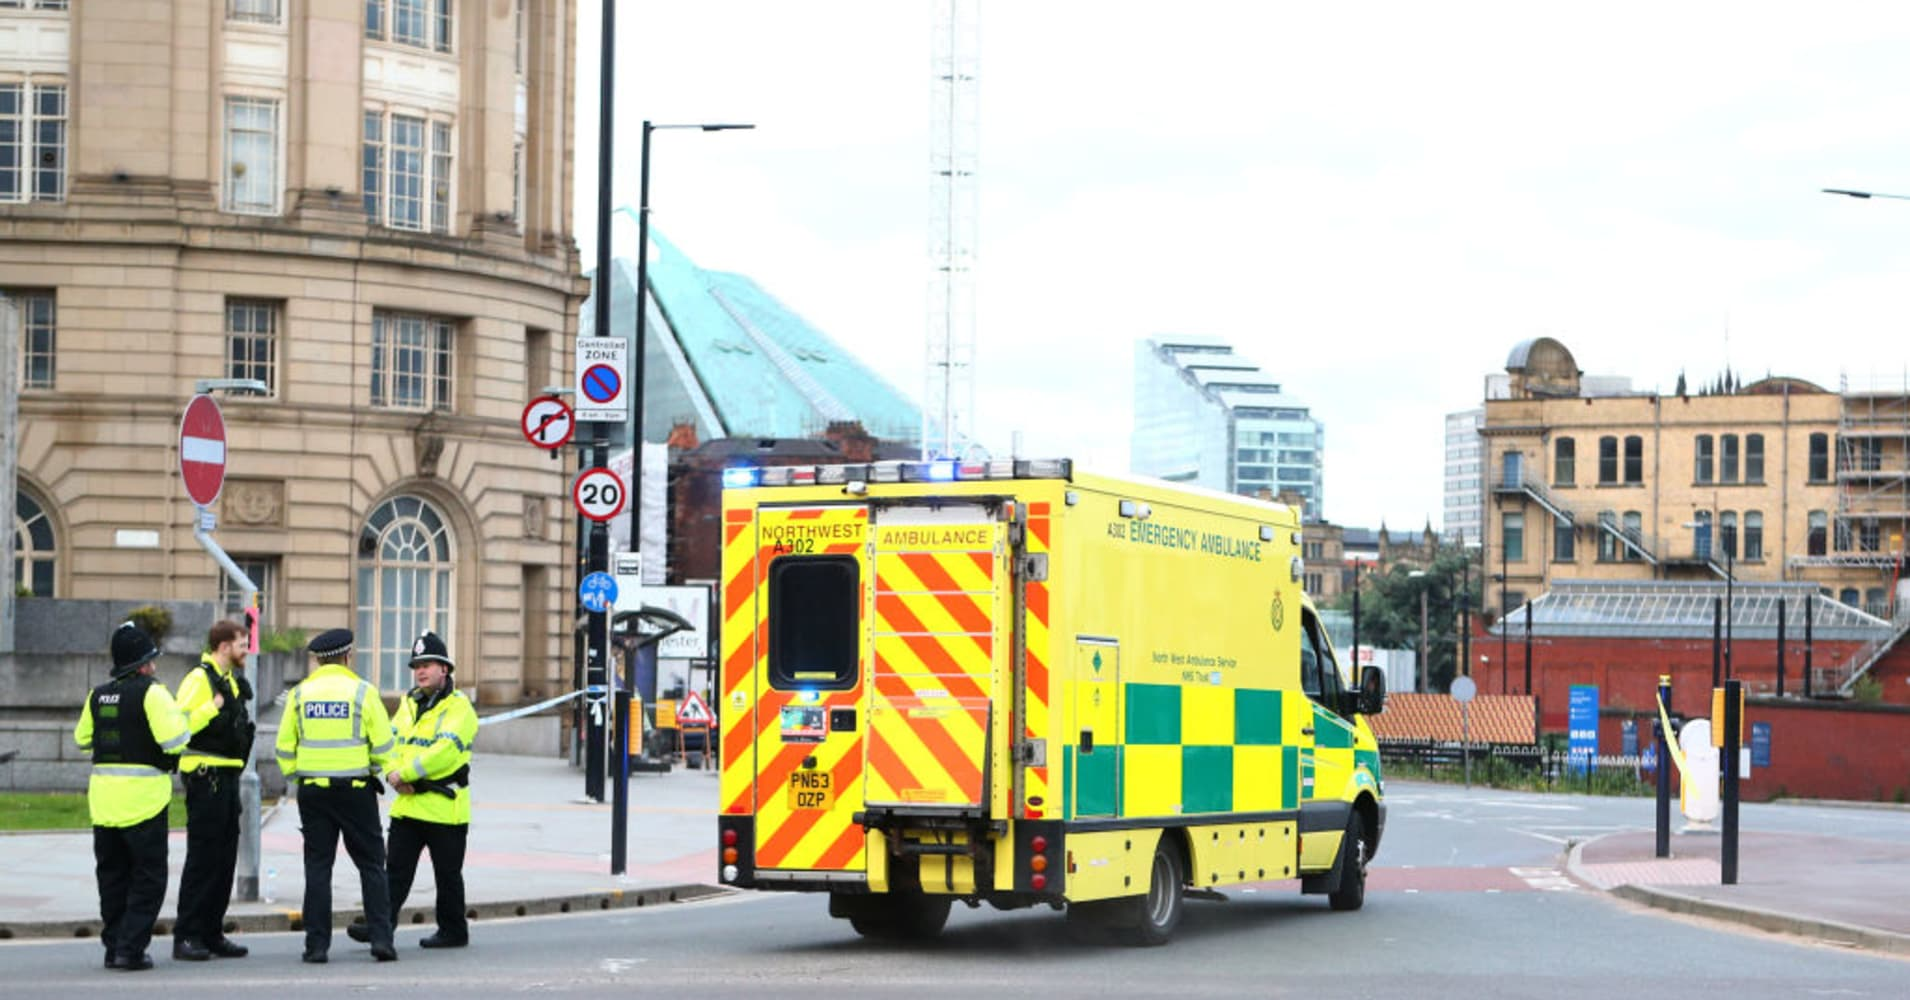 Sophisticated weapon used in Manchester terror attack is 'disturbing', says security expert